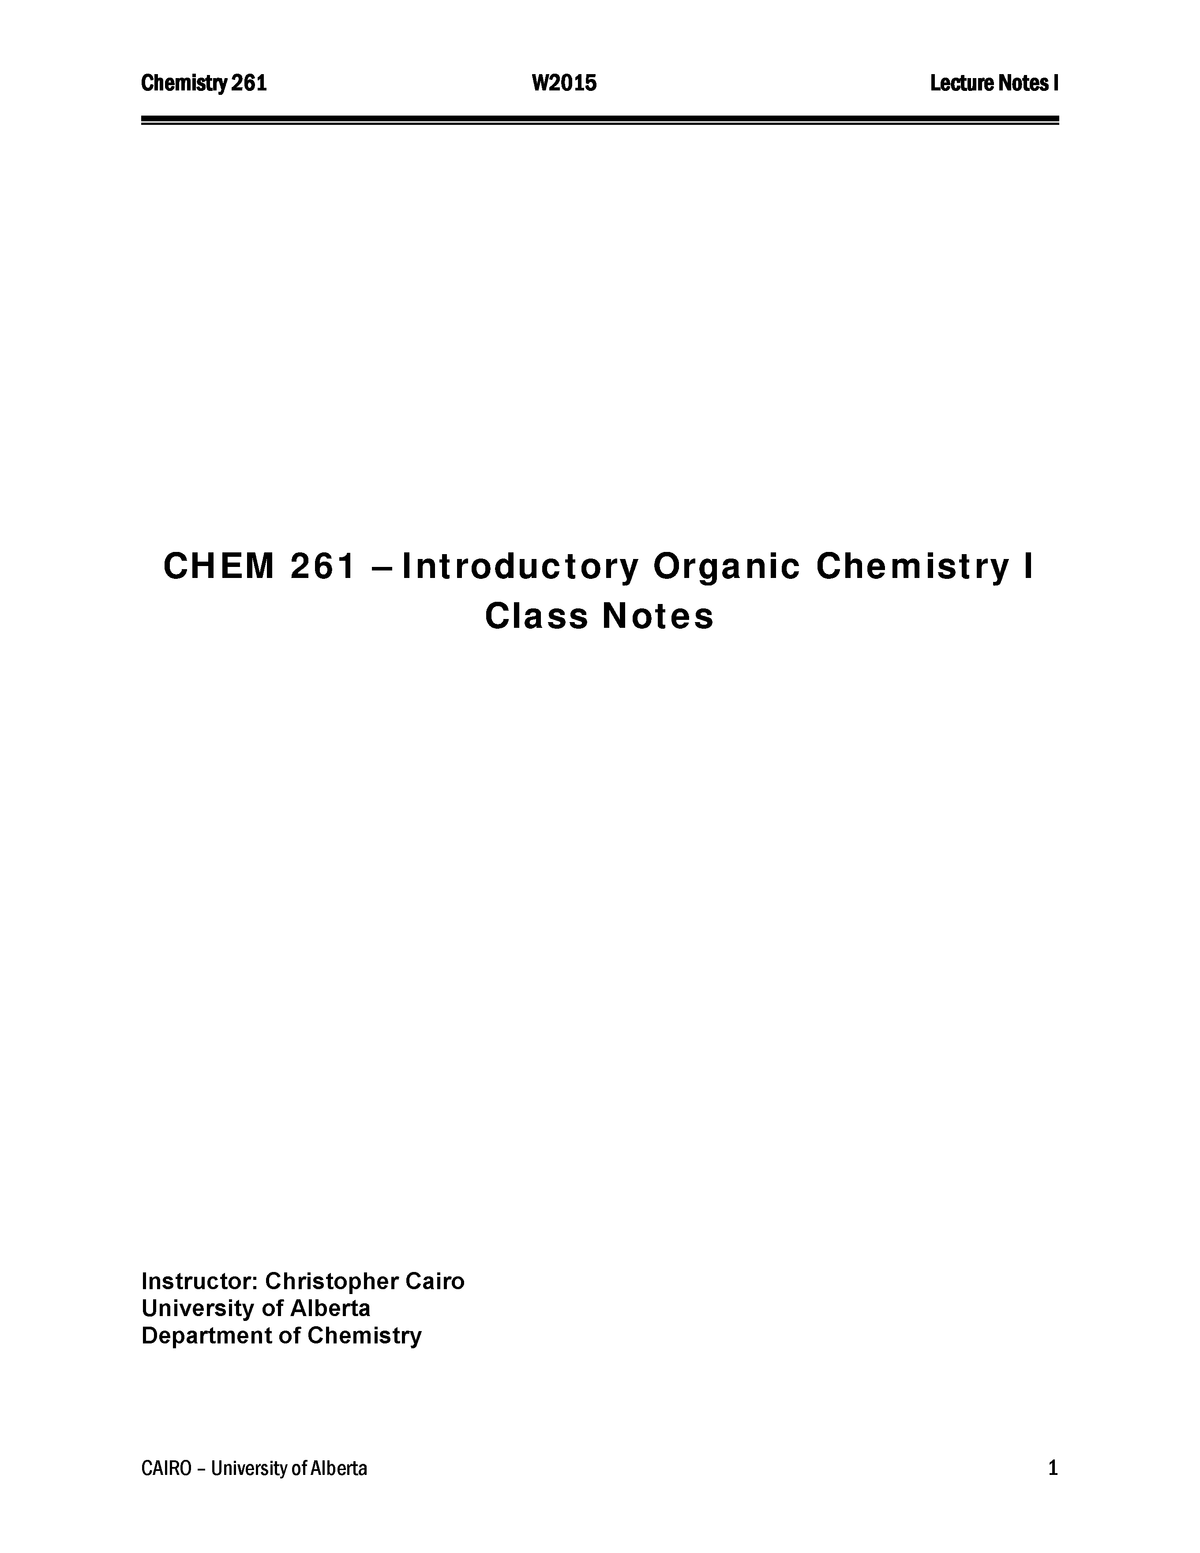 Organic Chemistry - Lecture notes - Chem261 Notes - StuDocu